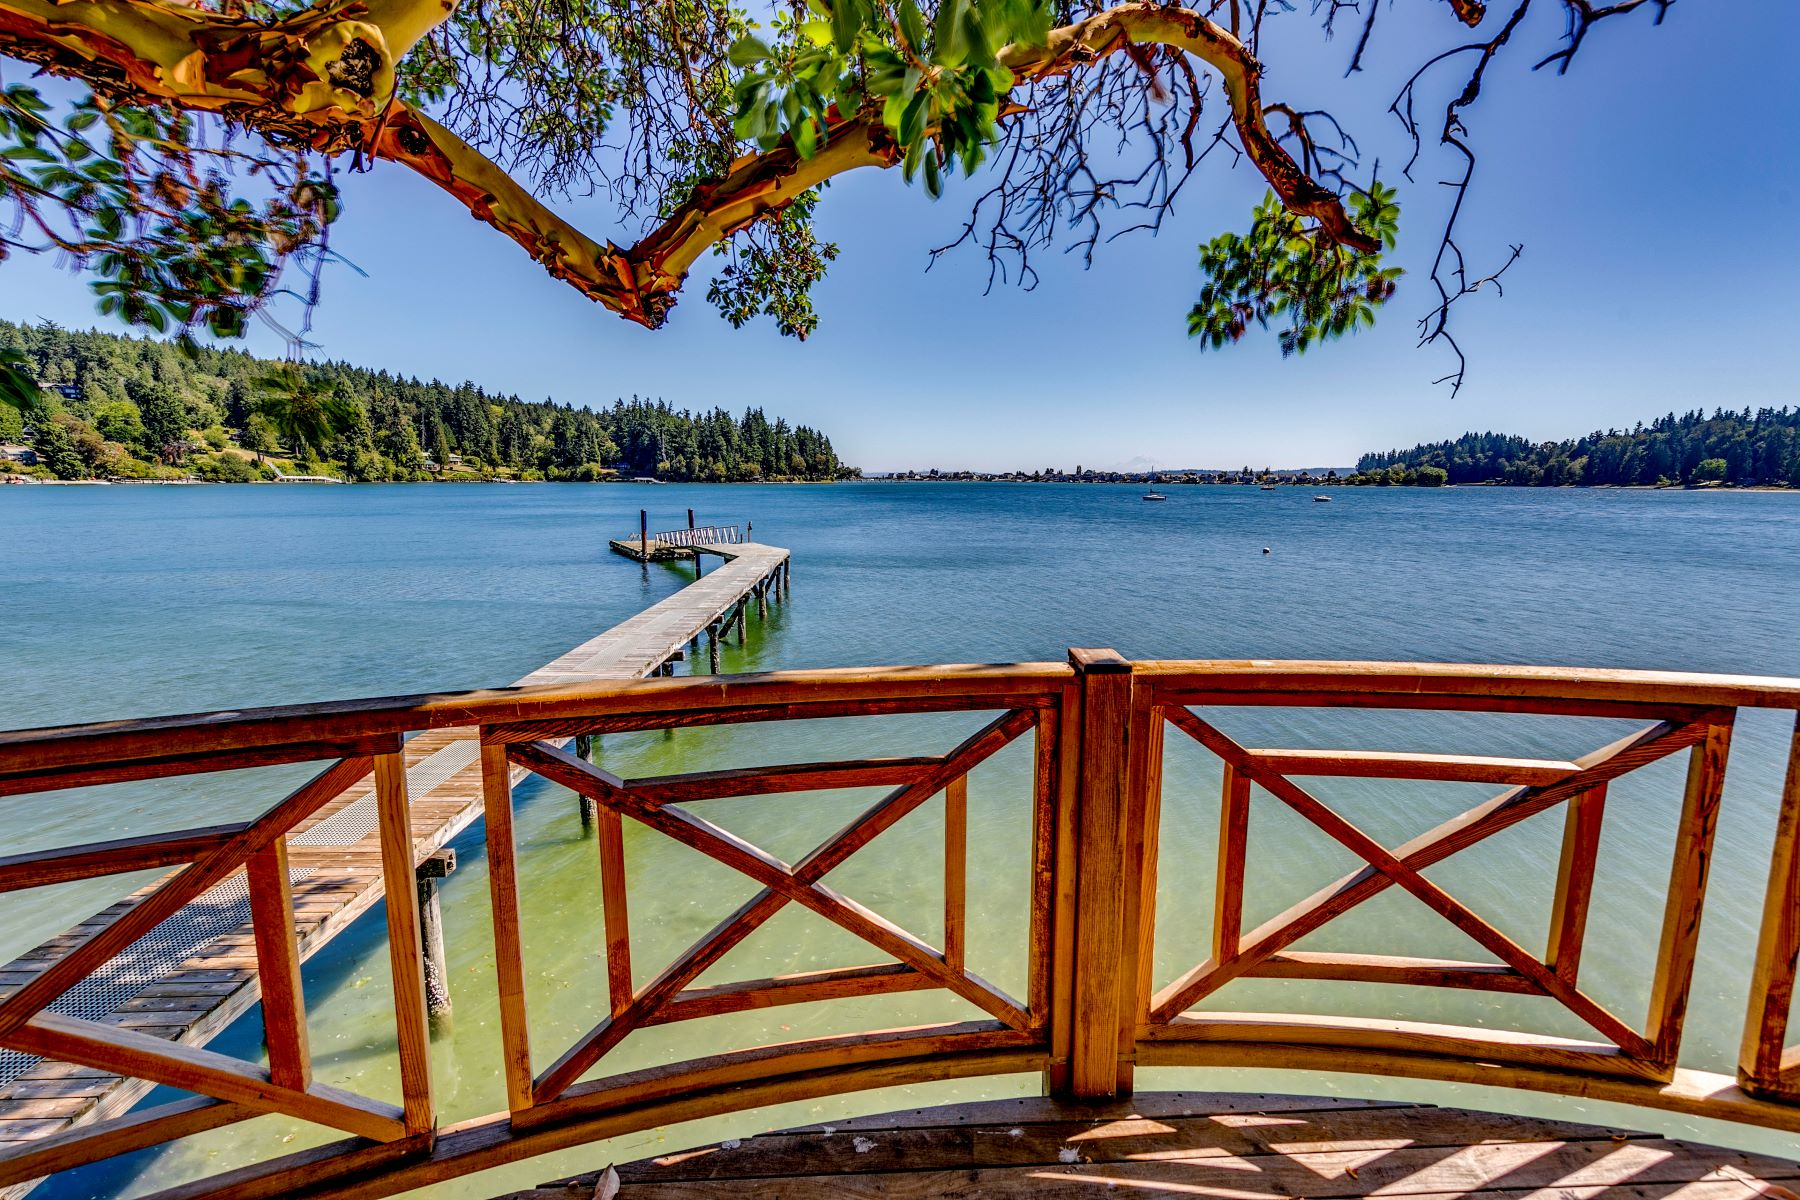 Single Family Homes for Sale at 21512 Miller Bay Road NE, Poulsbo, WA 98370 21512 Miller Bay Road NE Poulsbo, Washington 98370 United States